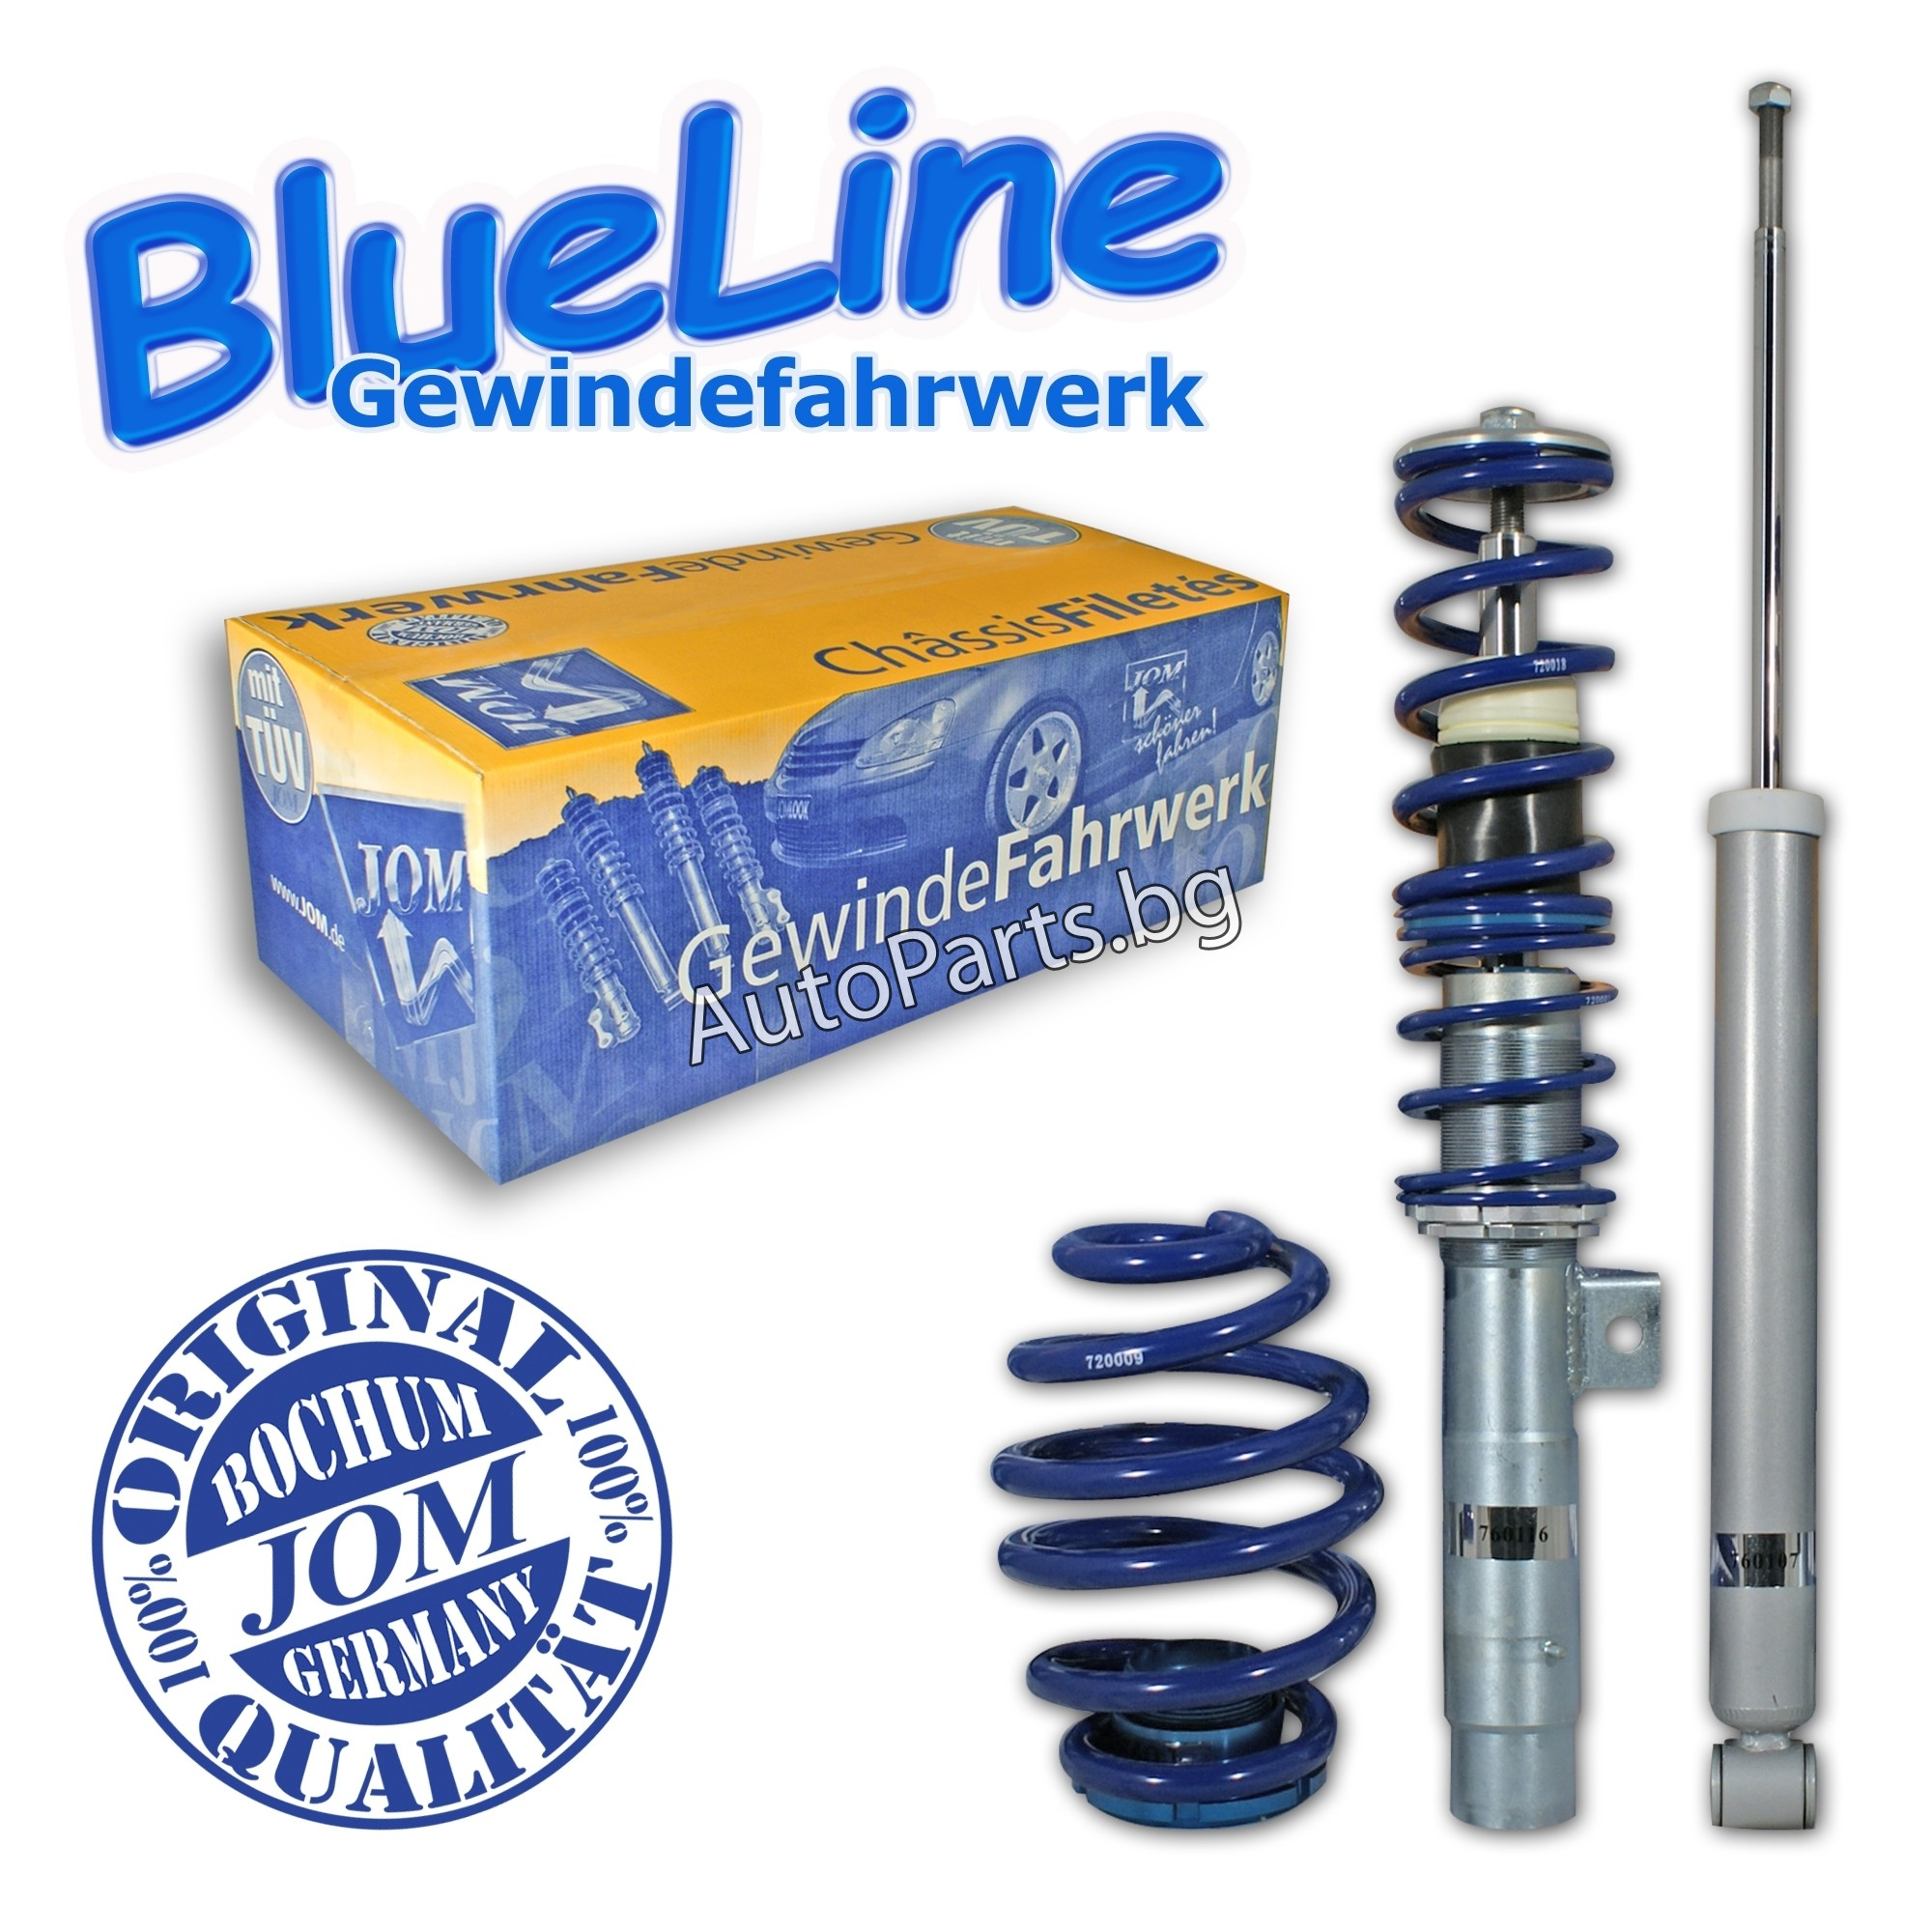 Регулируемо окачване Coilovers за BMW 3Ser (E46) SDN/SW 99-02